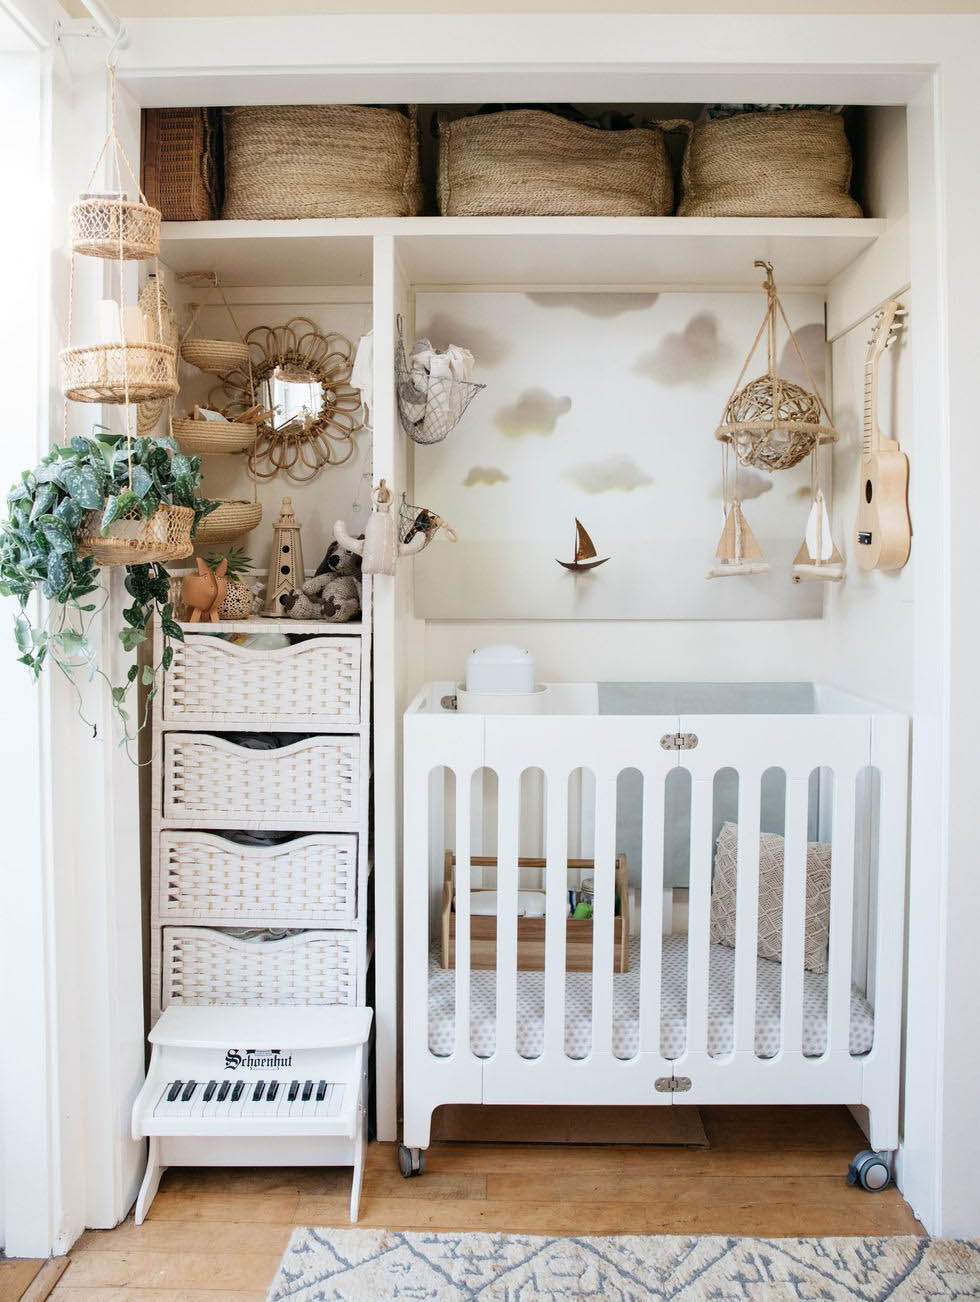 Above: Photo of the Cottage nursery by Sami Drasin for Cosmo (2017)